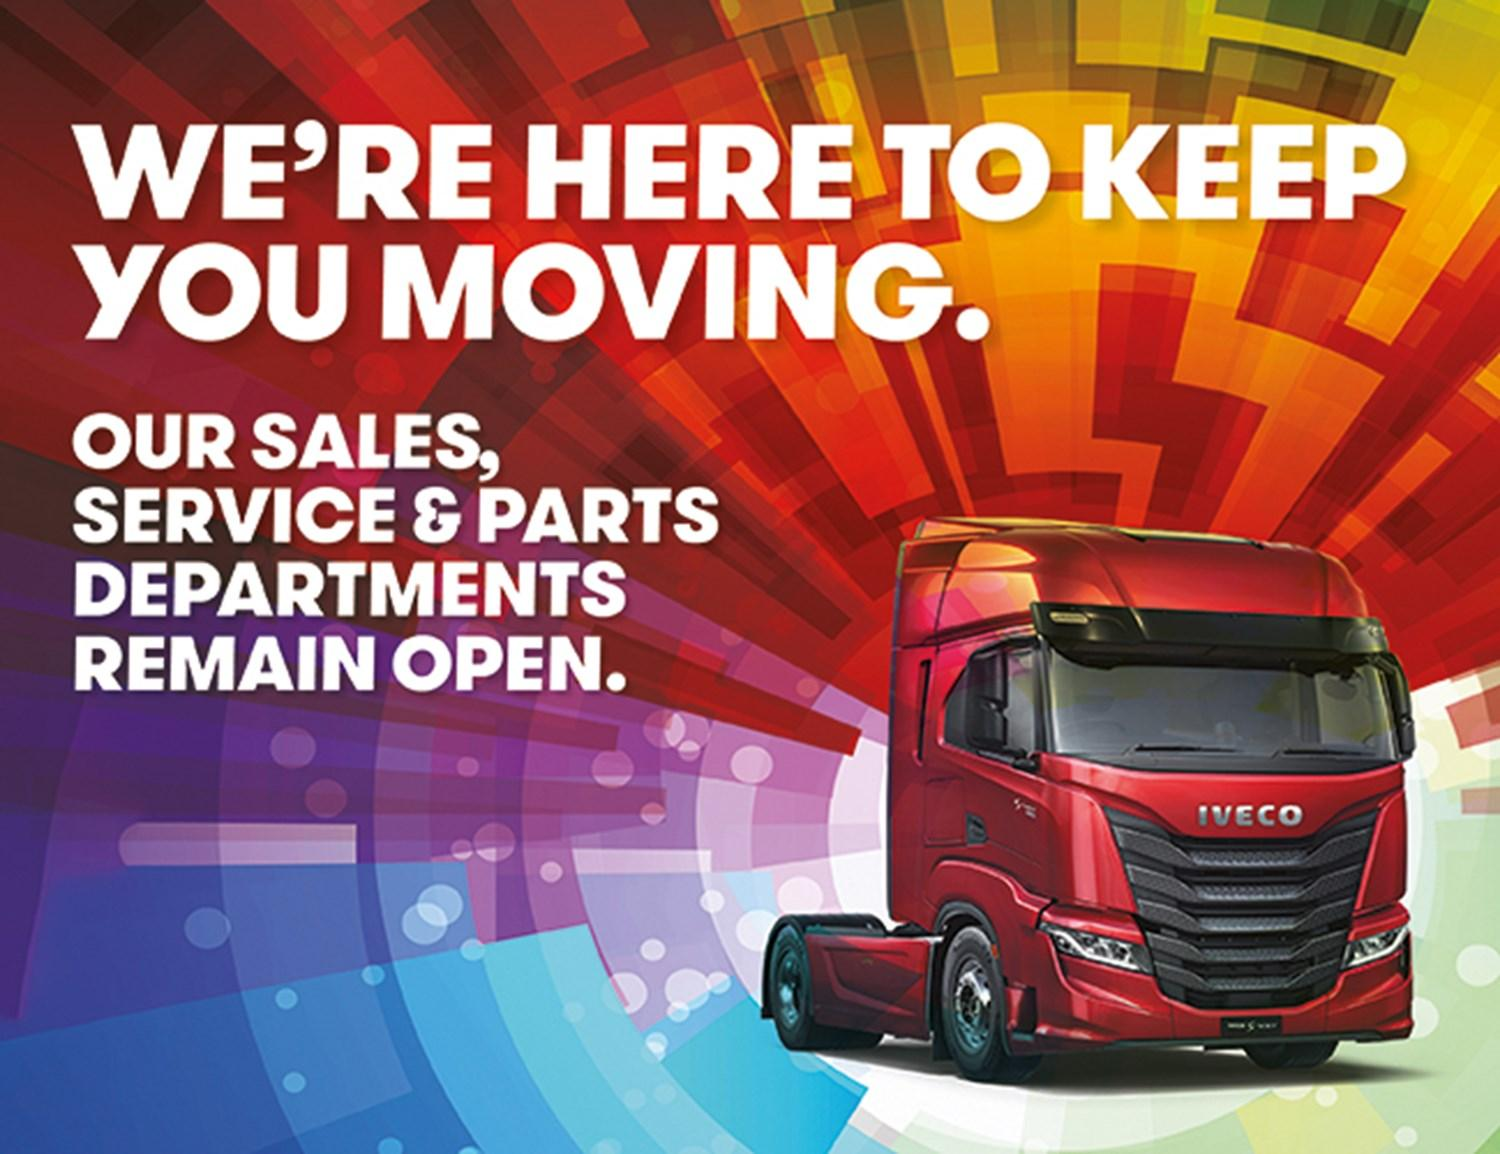 Our sales, service and parts departments remain open